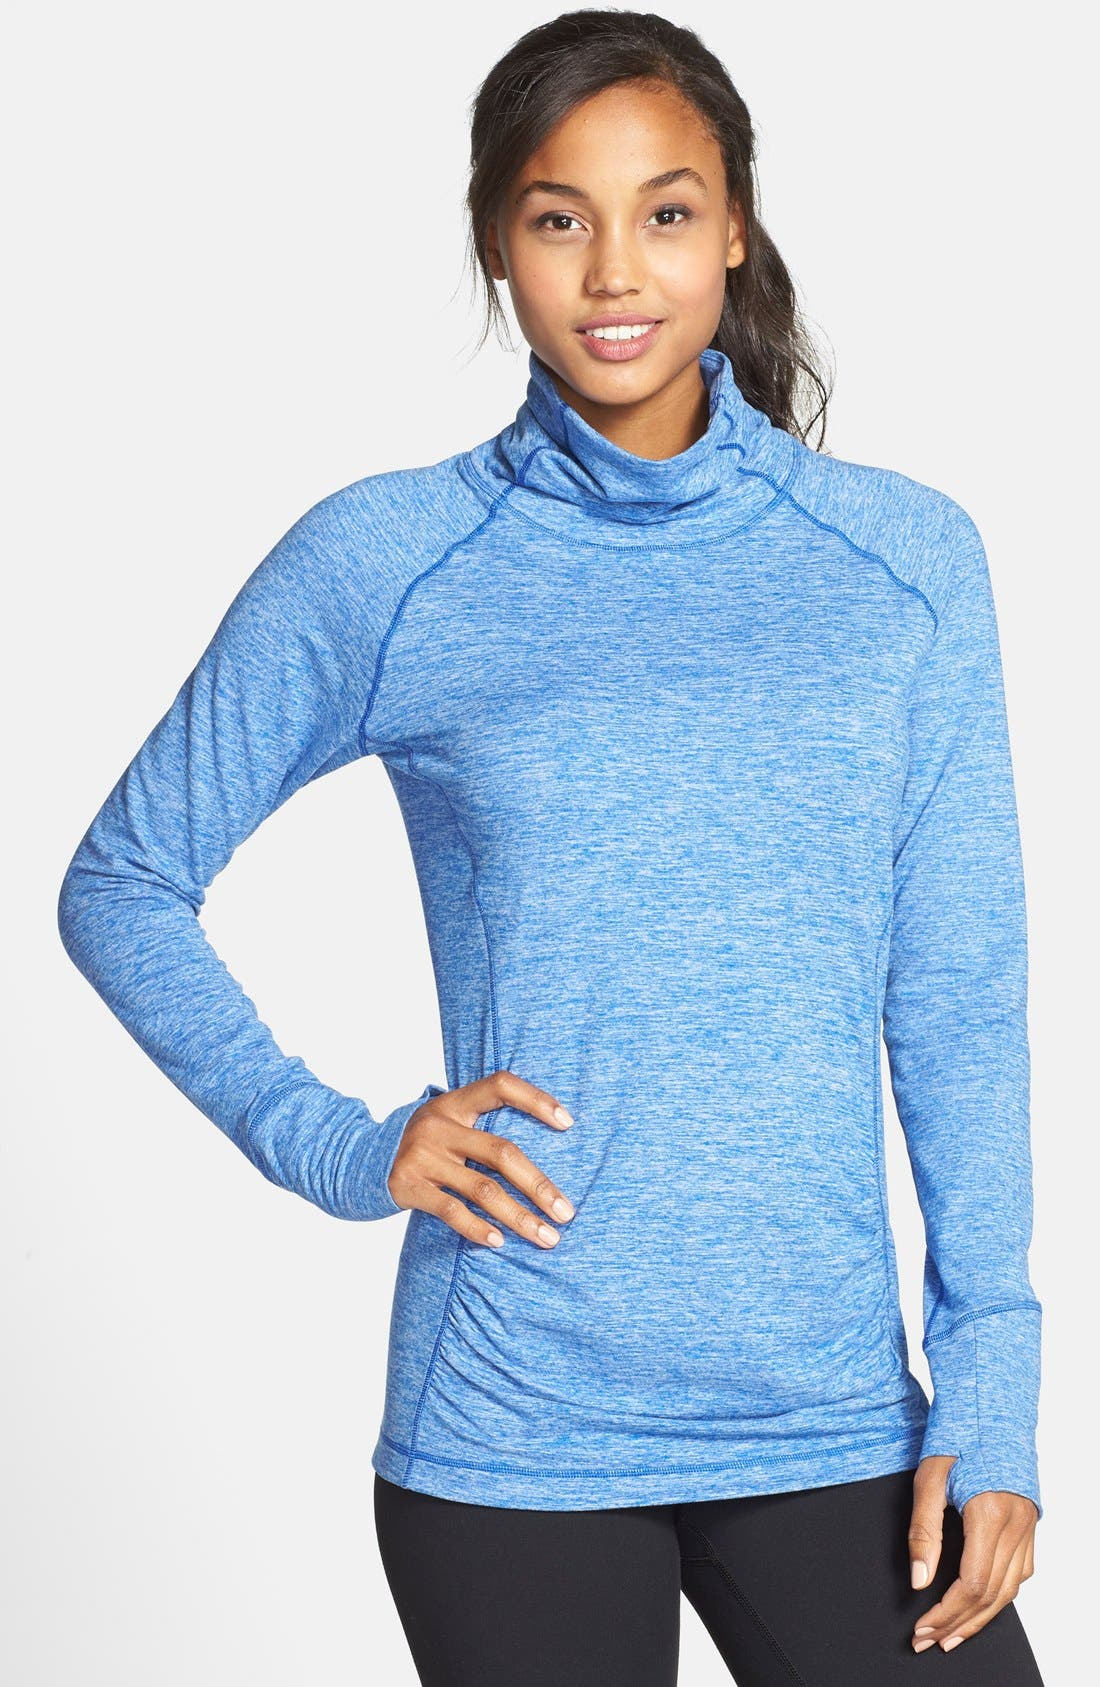 Space Dye Knit Pullover,                             Main thumbnail 1, color,                             400